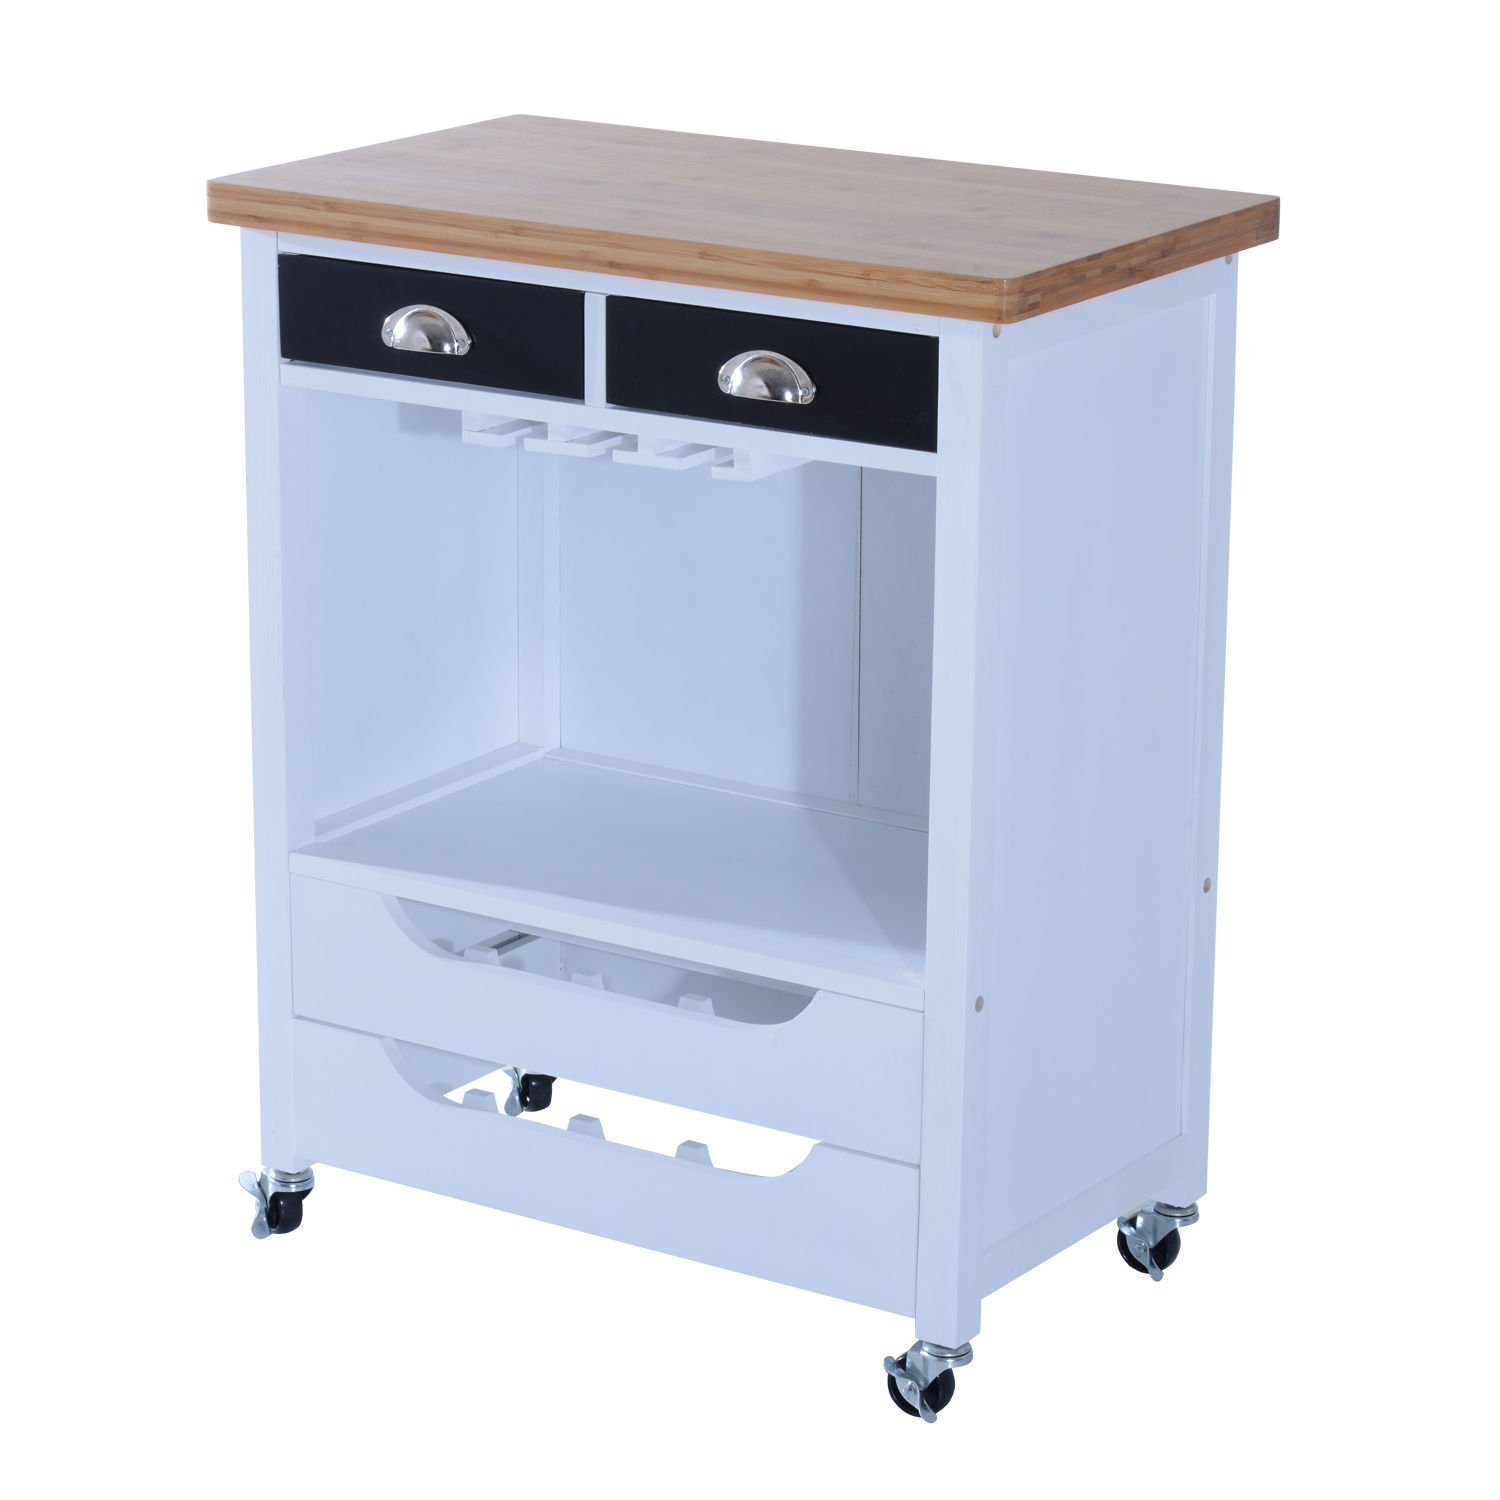 New Island Wheels Drawer Wood MDF W/ Red Wine Rack Rolling Kitchen Cart Trolley